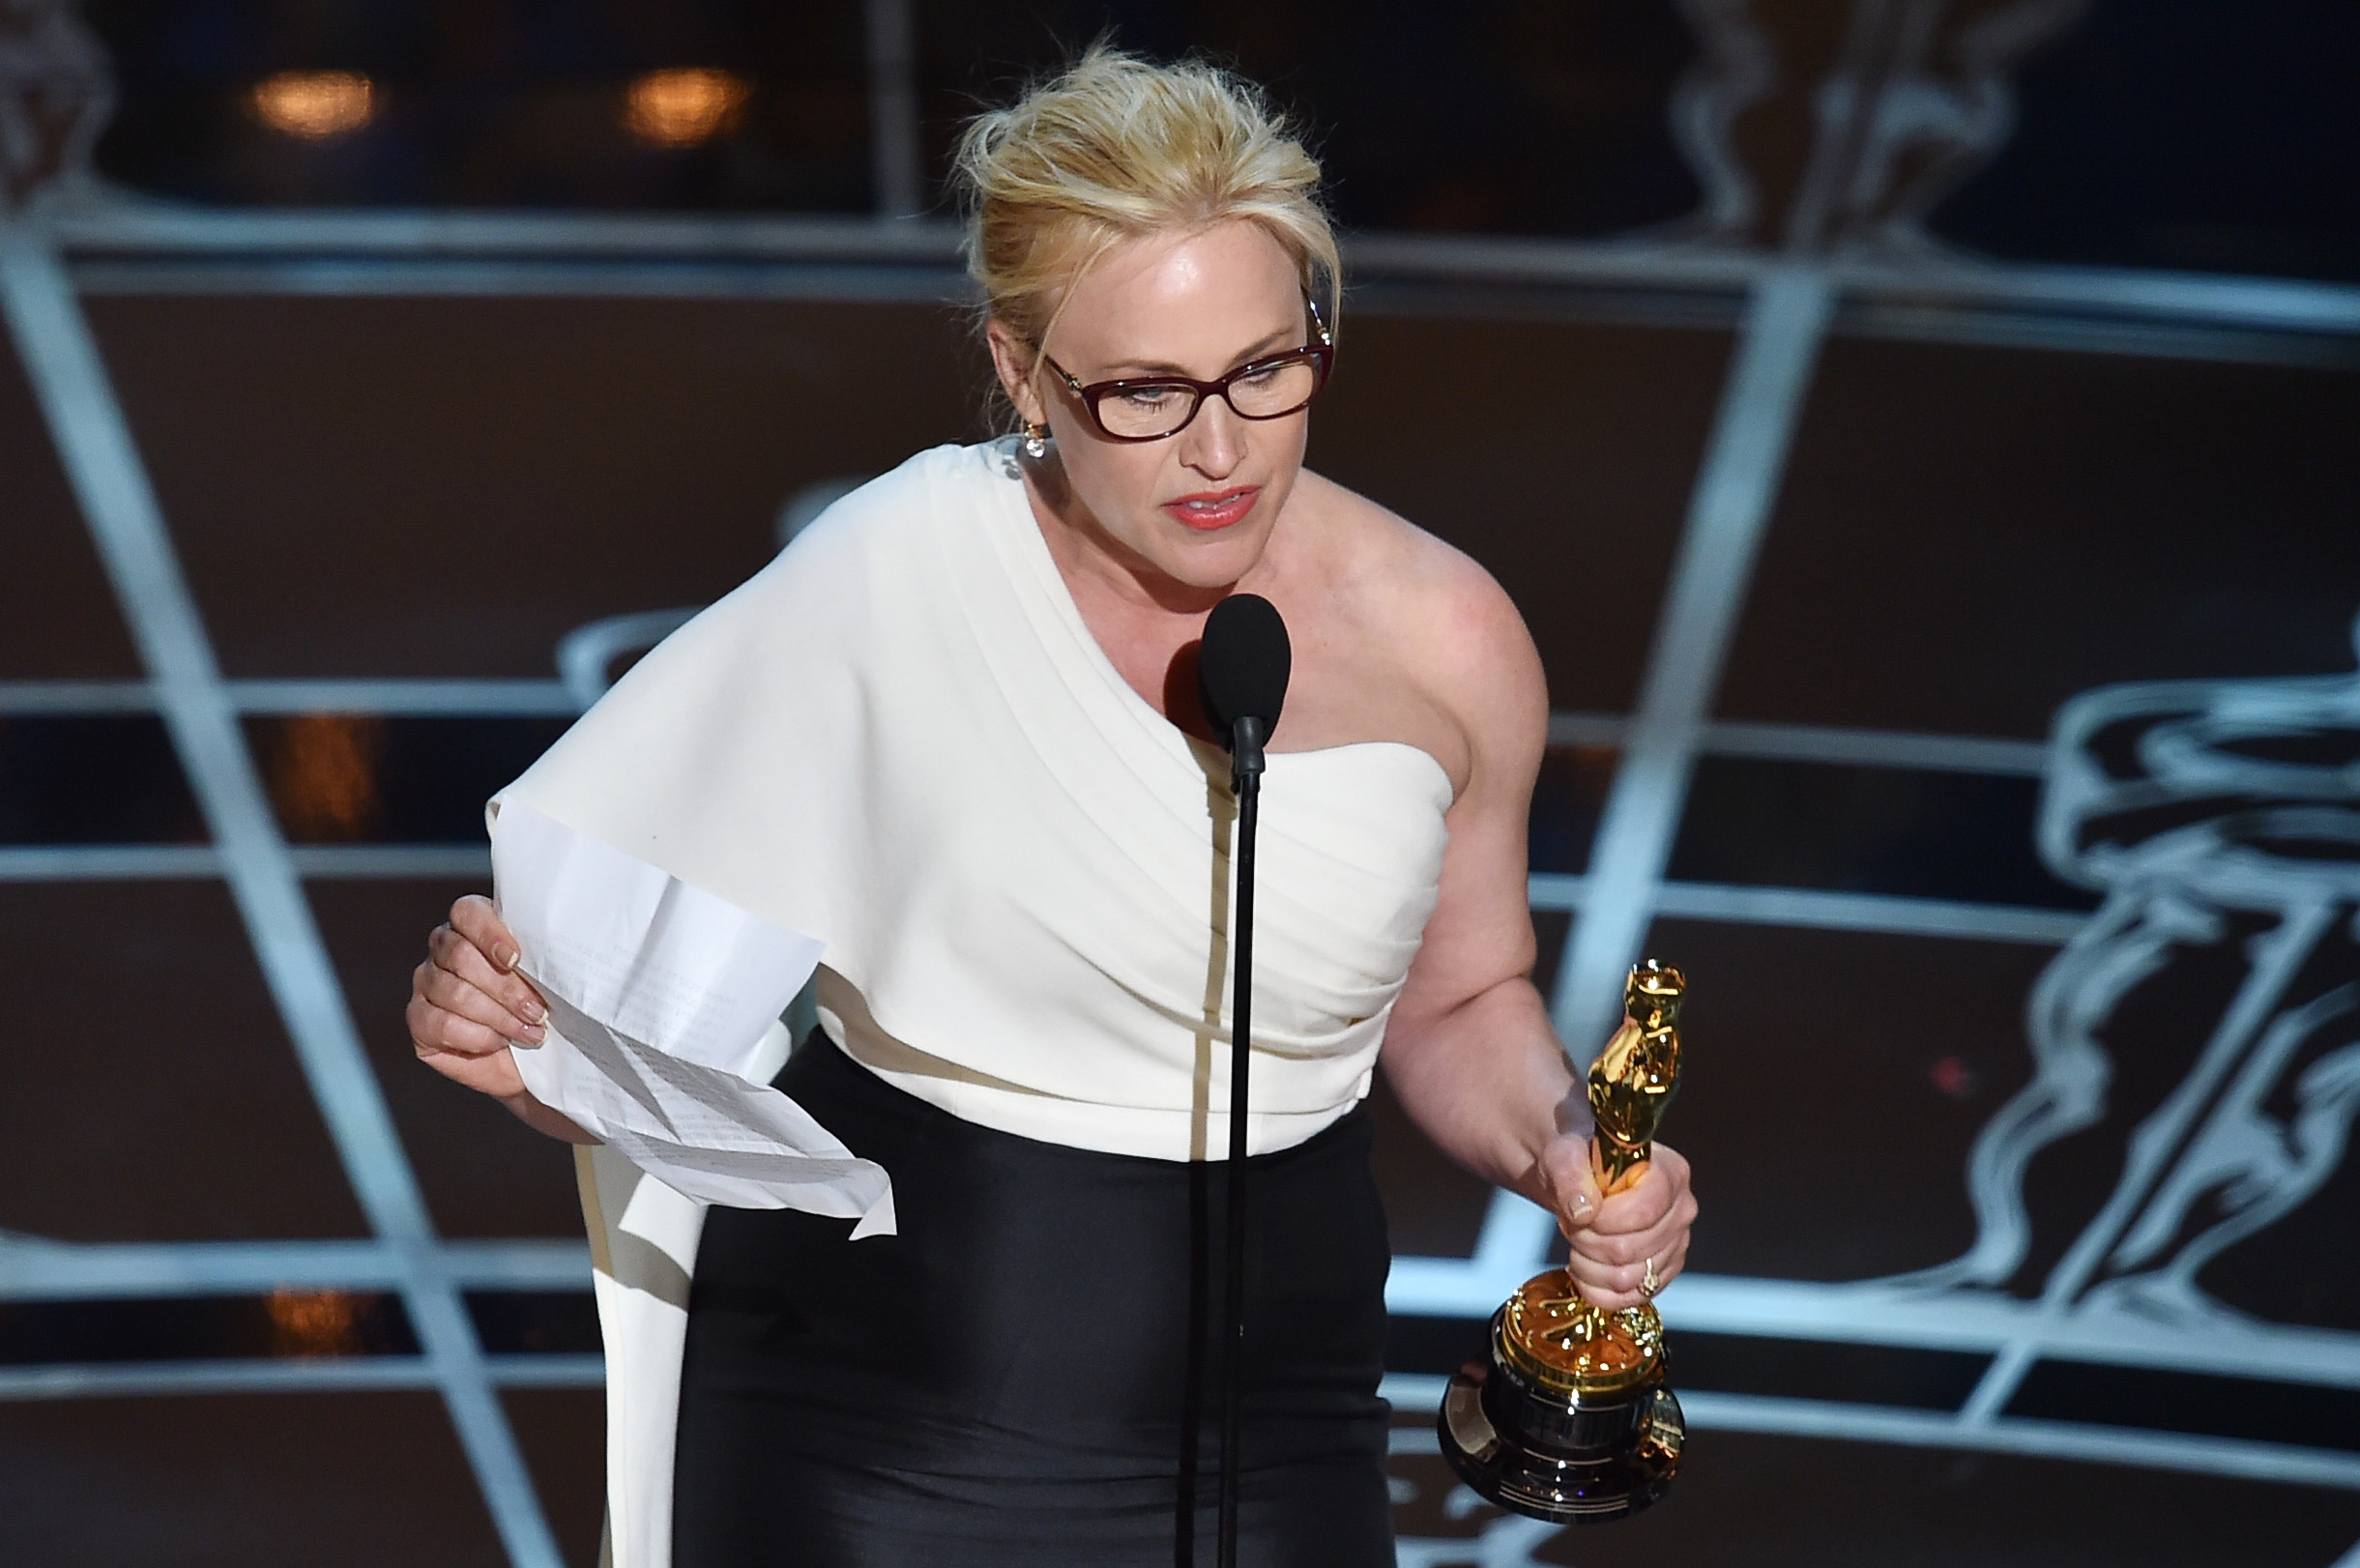 Patricia Arquette accepts the award for Best Actress in a Supporting Role for 'Boyhood' during the 87th Annual Academy Awards on February 22, 2015 in Hollywood, California.